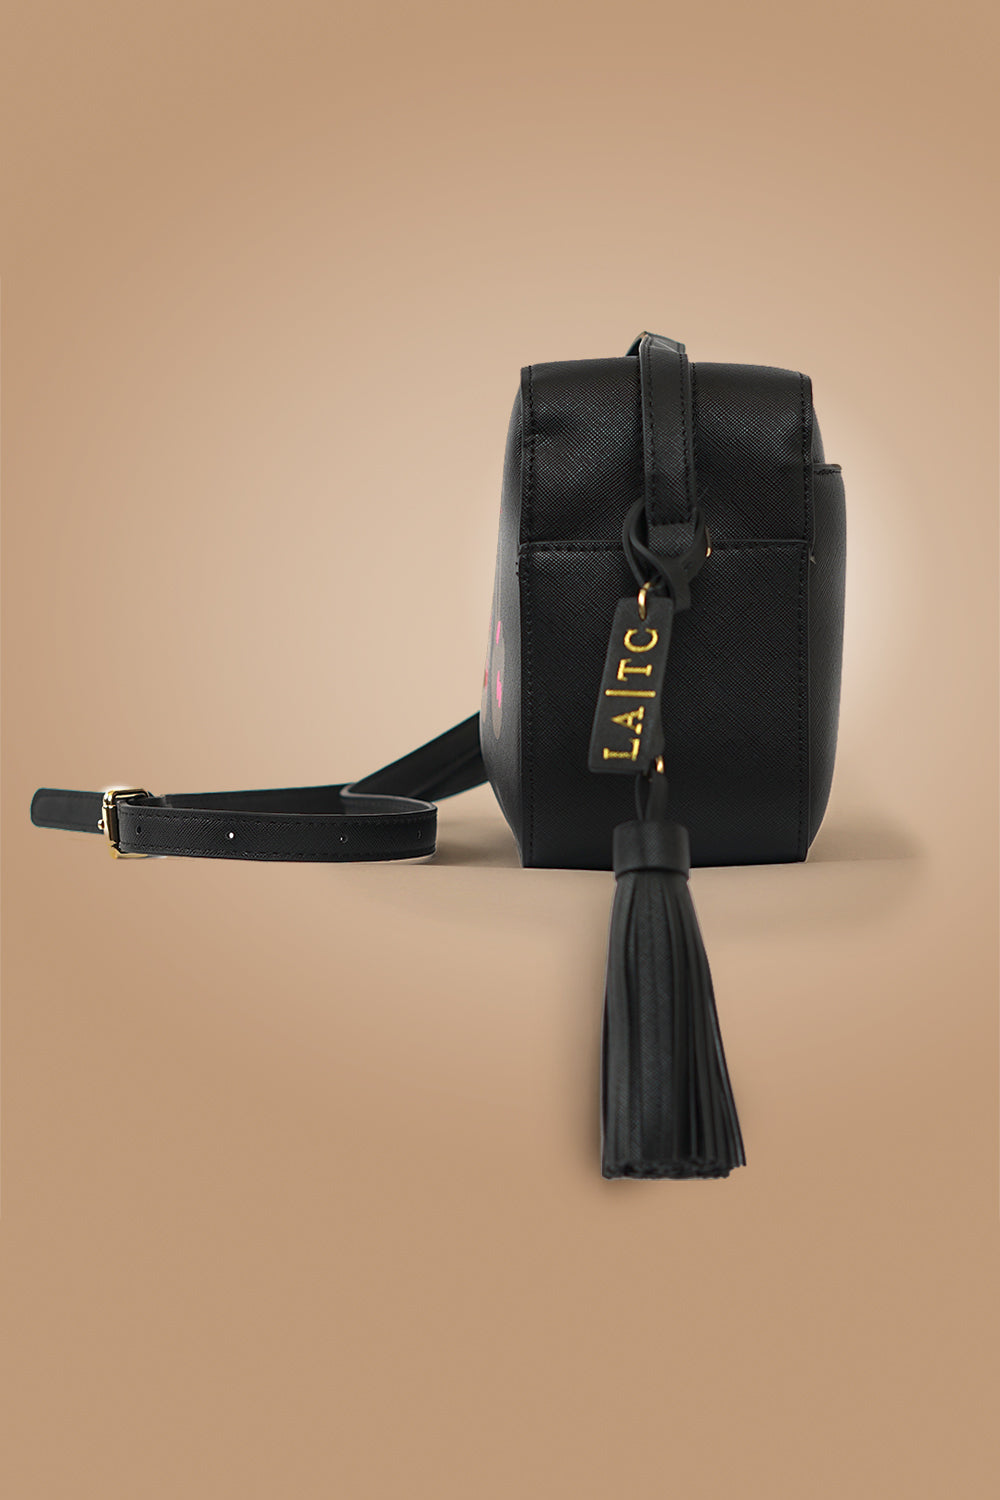 VEGAN CROSSBODY BAG - Fluent Italian (Black